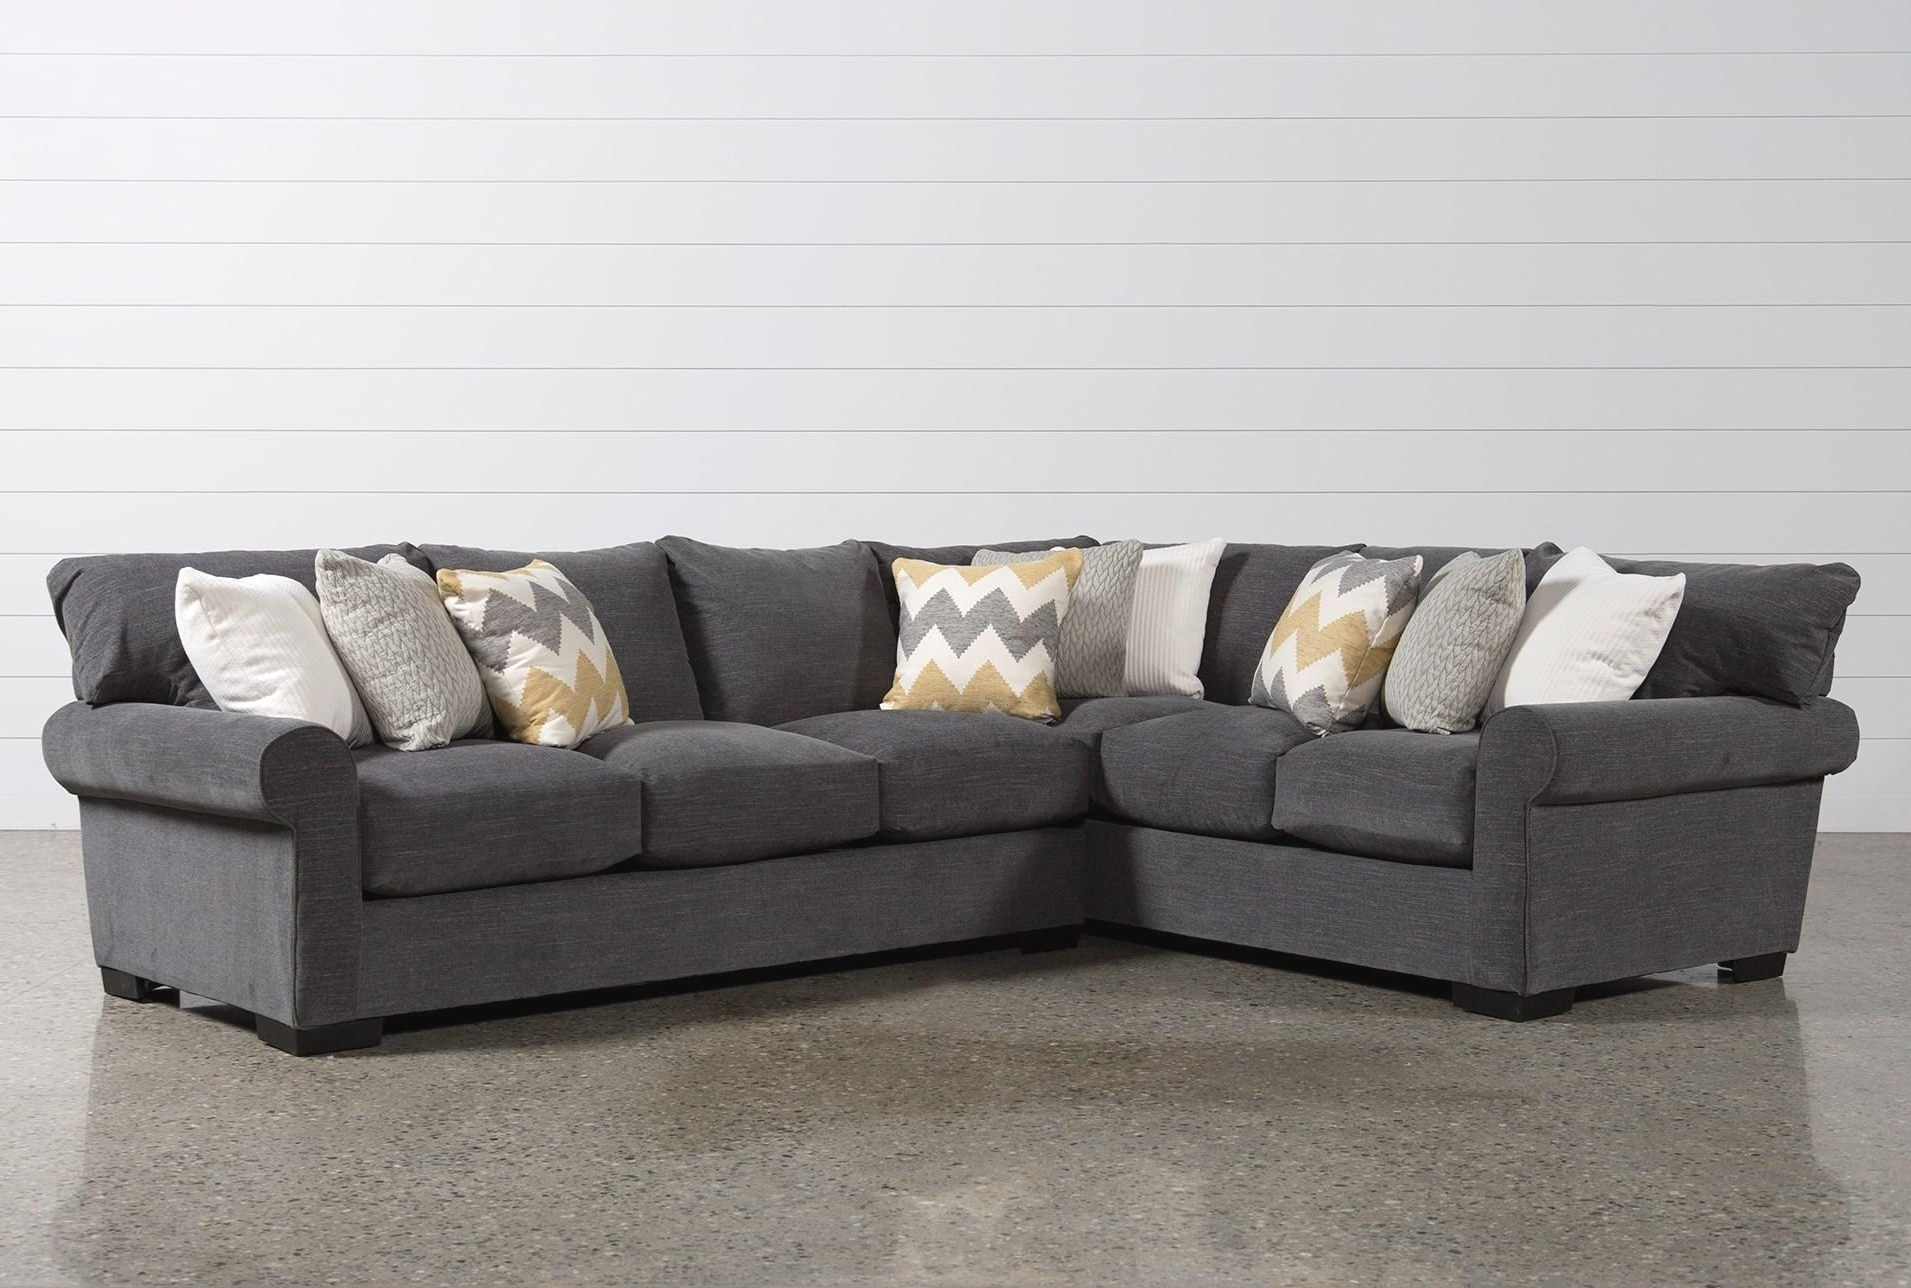 Latest Aquarius Light Grey 2 Piece Sectionals With Raf Chaise Intended For Old Corbin Piece Sectional W Raf Chaise Ideas Living Spaces Living (View 19 of 20)